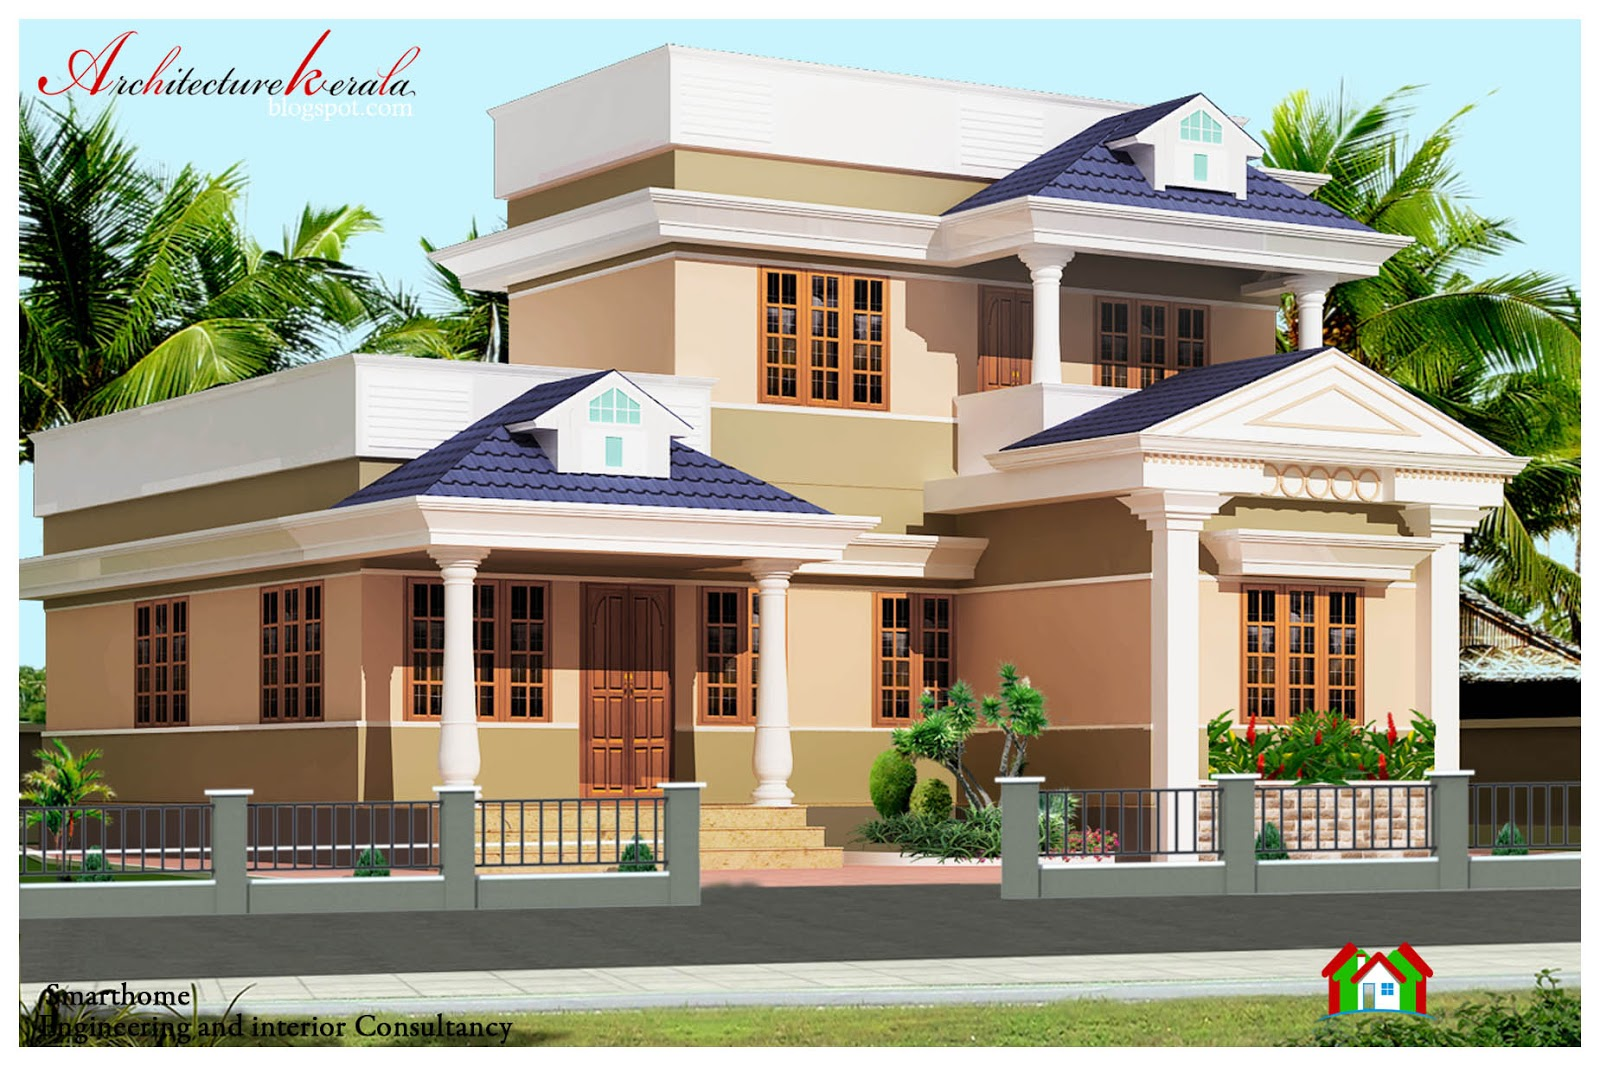 Architecture kerala 1000 sq ft kerala style house plan for Kerala house plans 1000 square feet